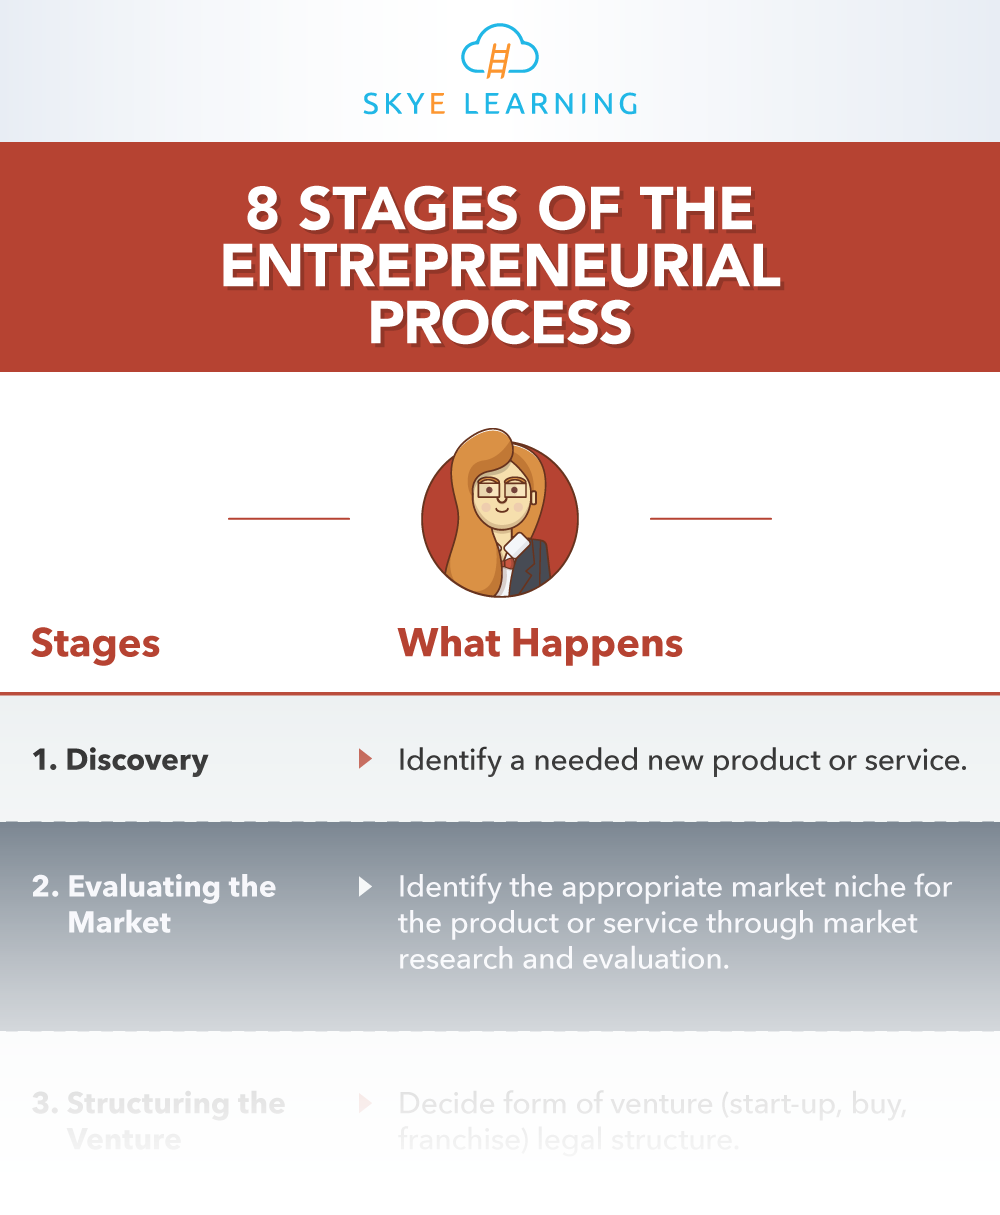 8-Stages-of-the-Entrepreneurial-Process-SL-IG-TRUNCATED